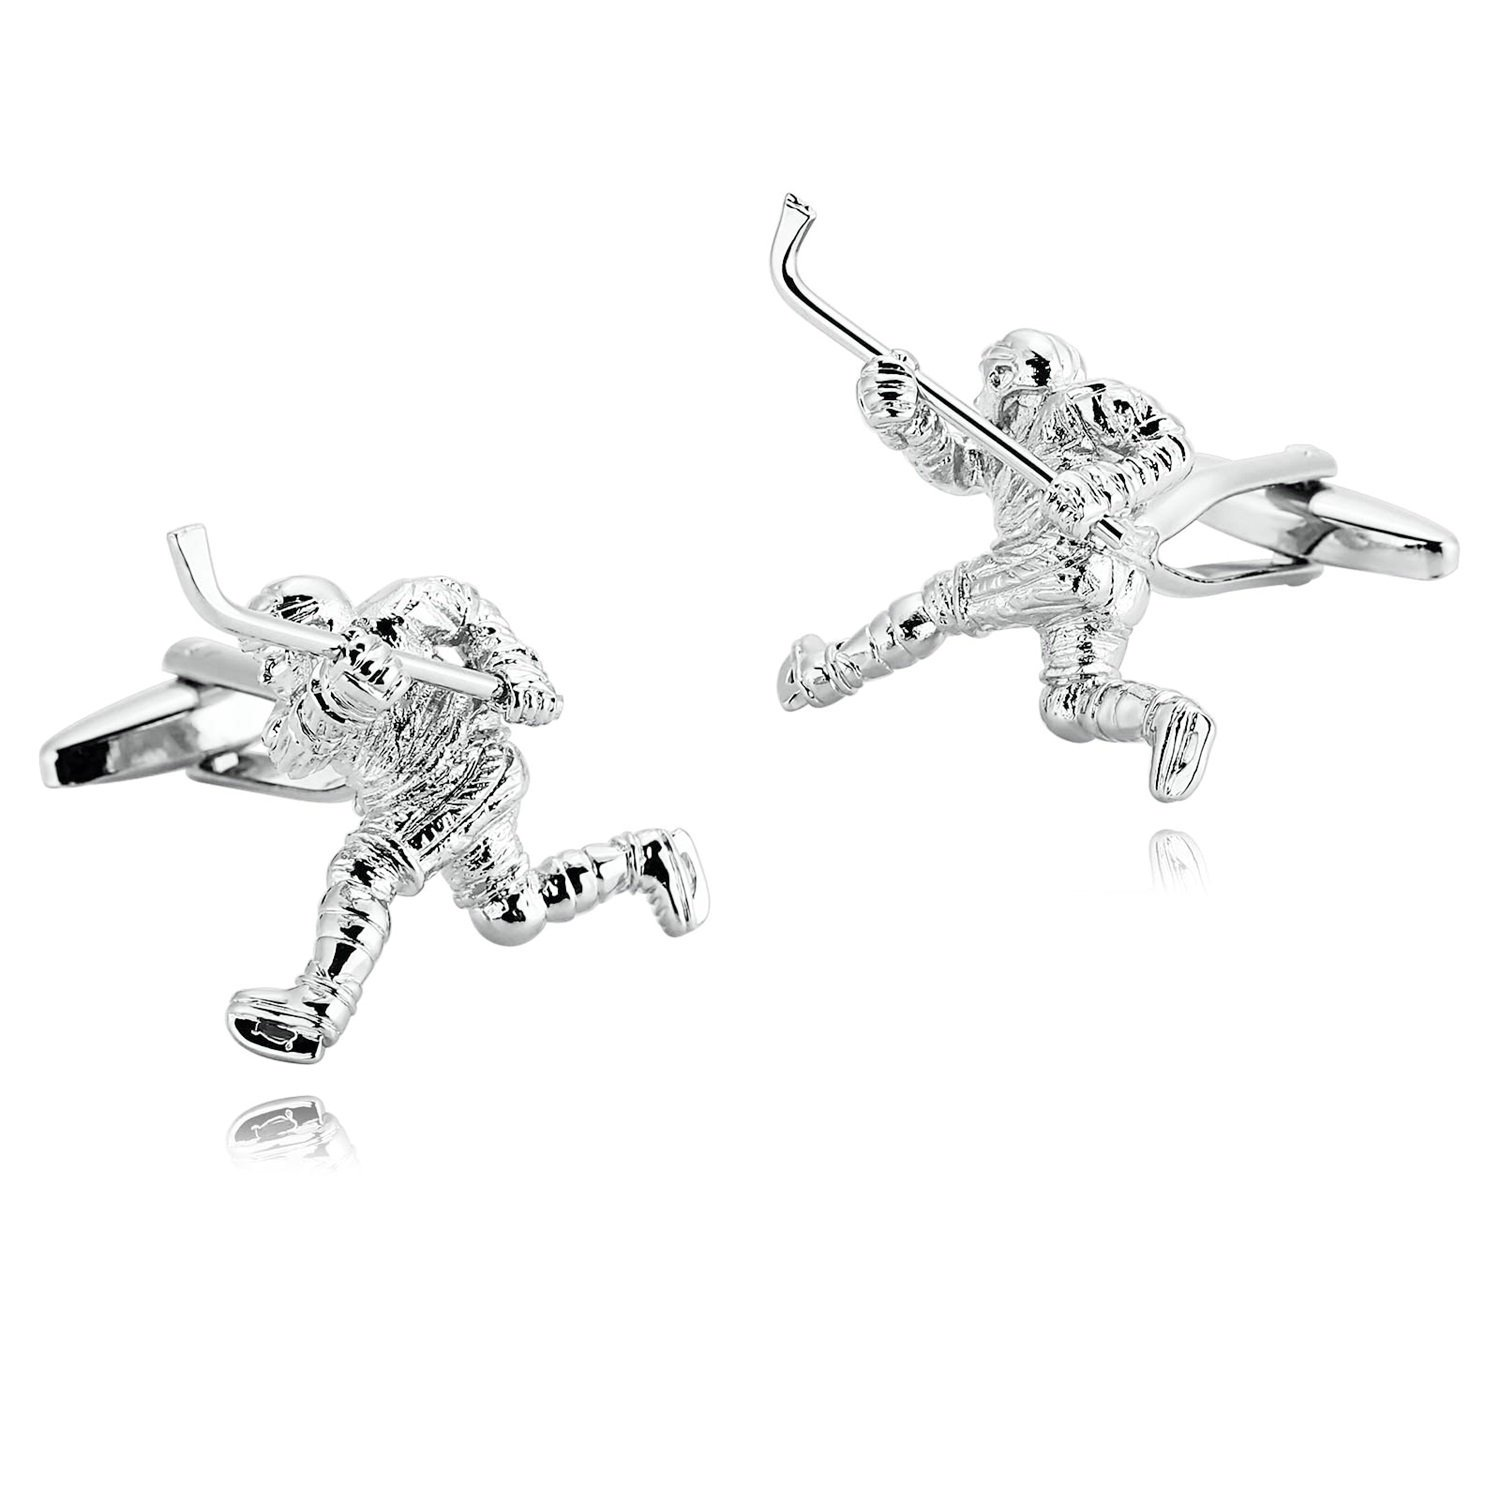 Amody Stainless Steel Silver Jewelry Ice Hockey Player Cufflinks for Mens 3×2.9CM